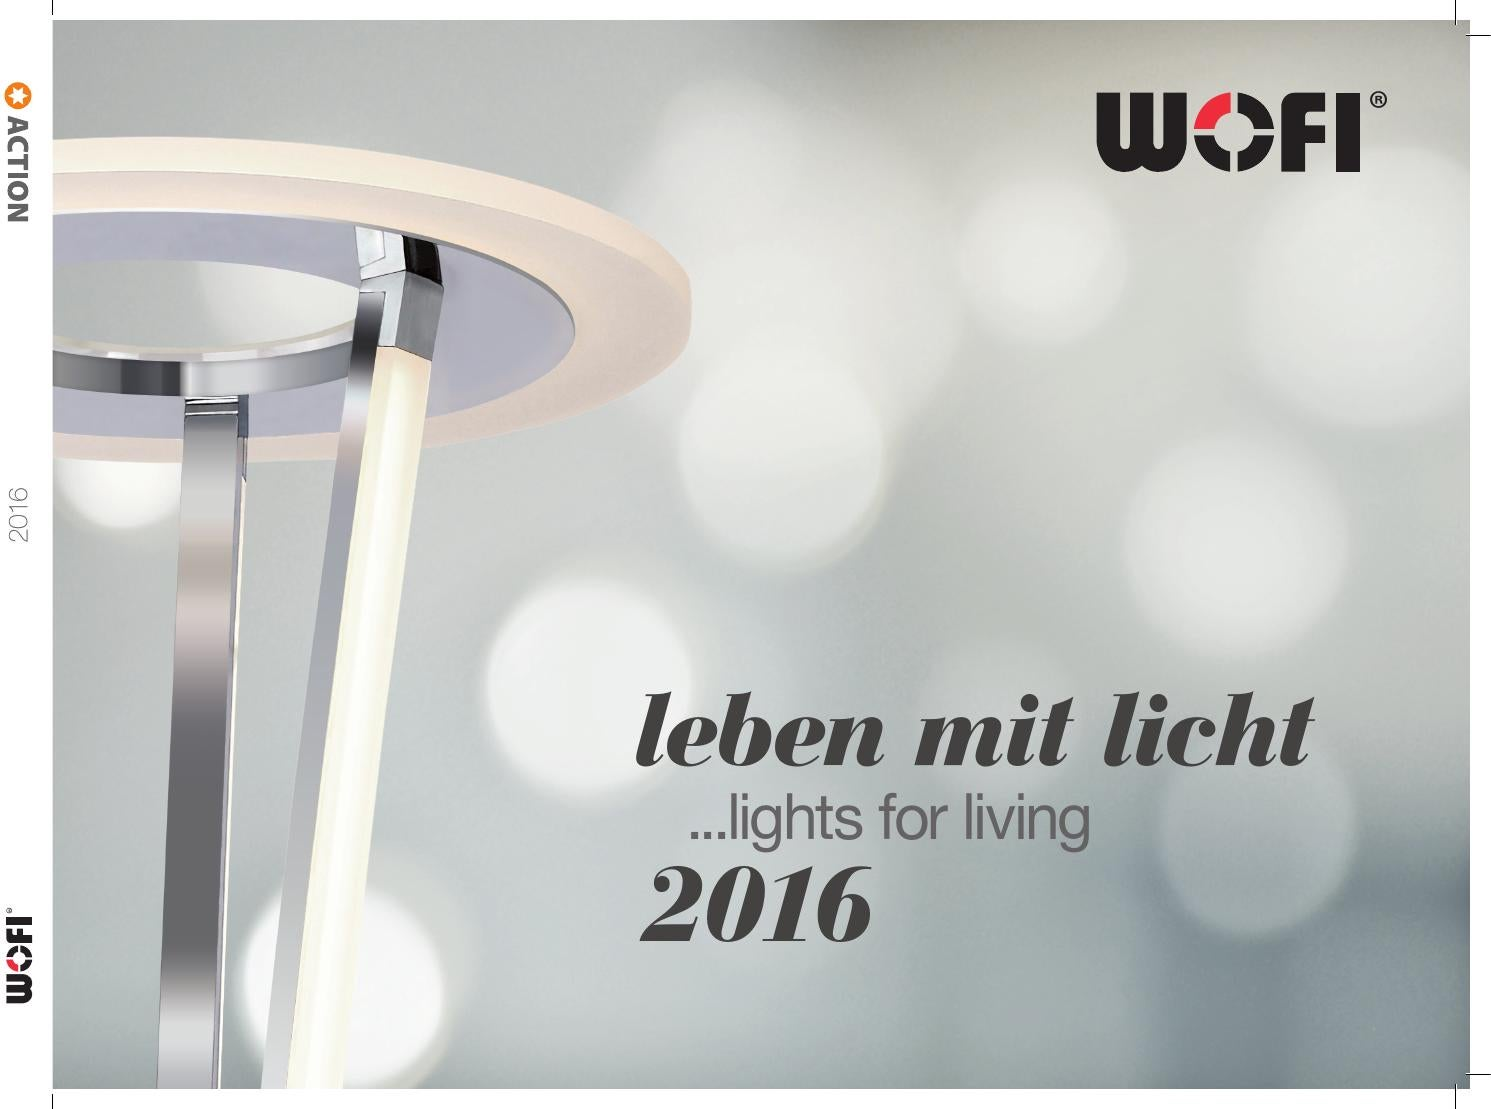 Deckenleuchte Led Praxis Wofi 2016 Action 2016 Website Anordnung By Lampen Shop Issuu